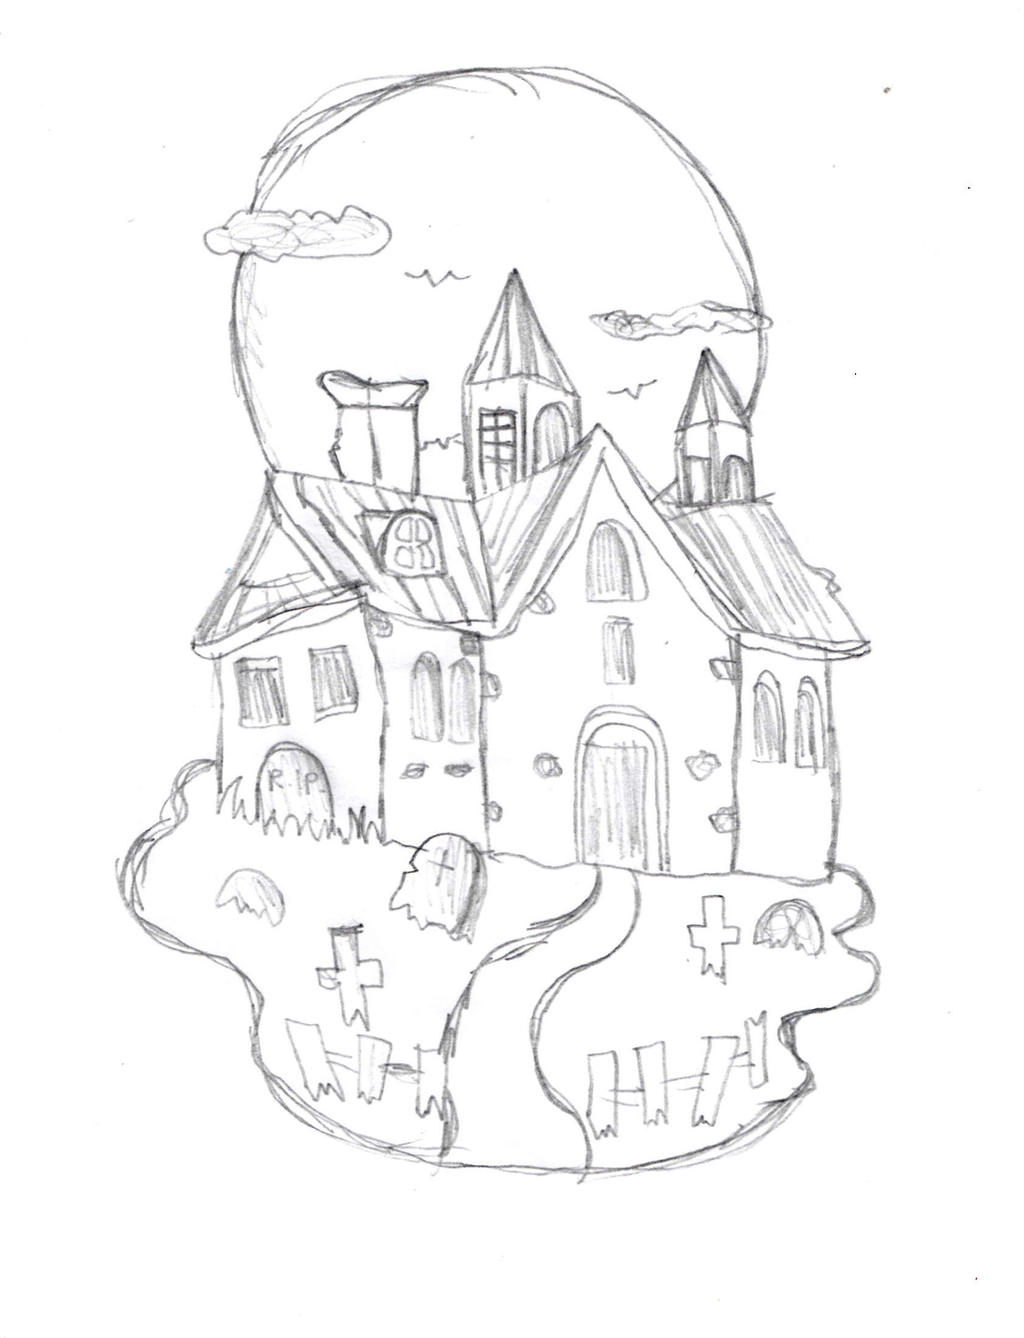 Haunted House Sketch By DrawingManuals On DeviantArt